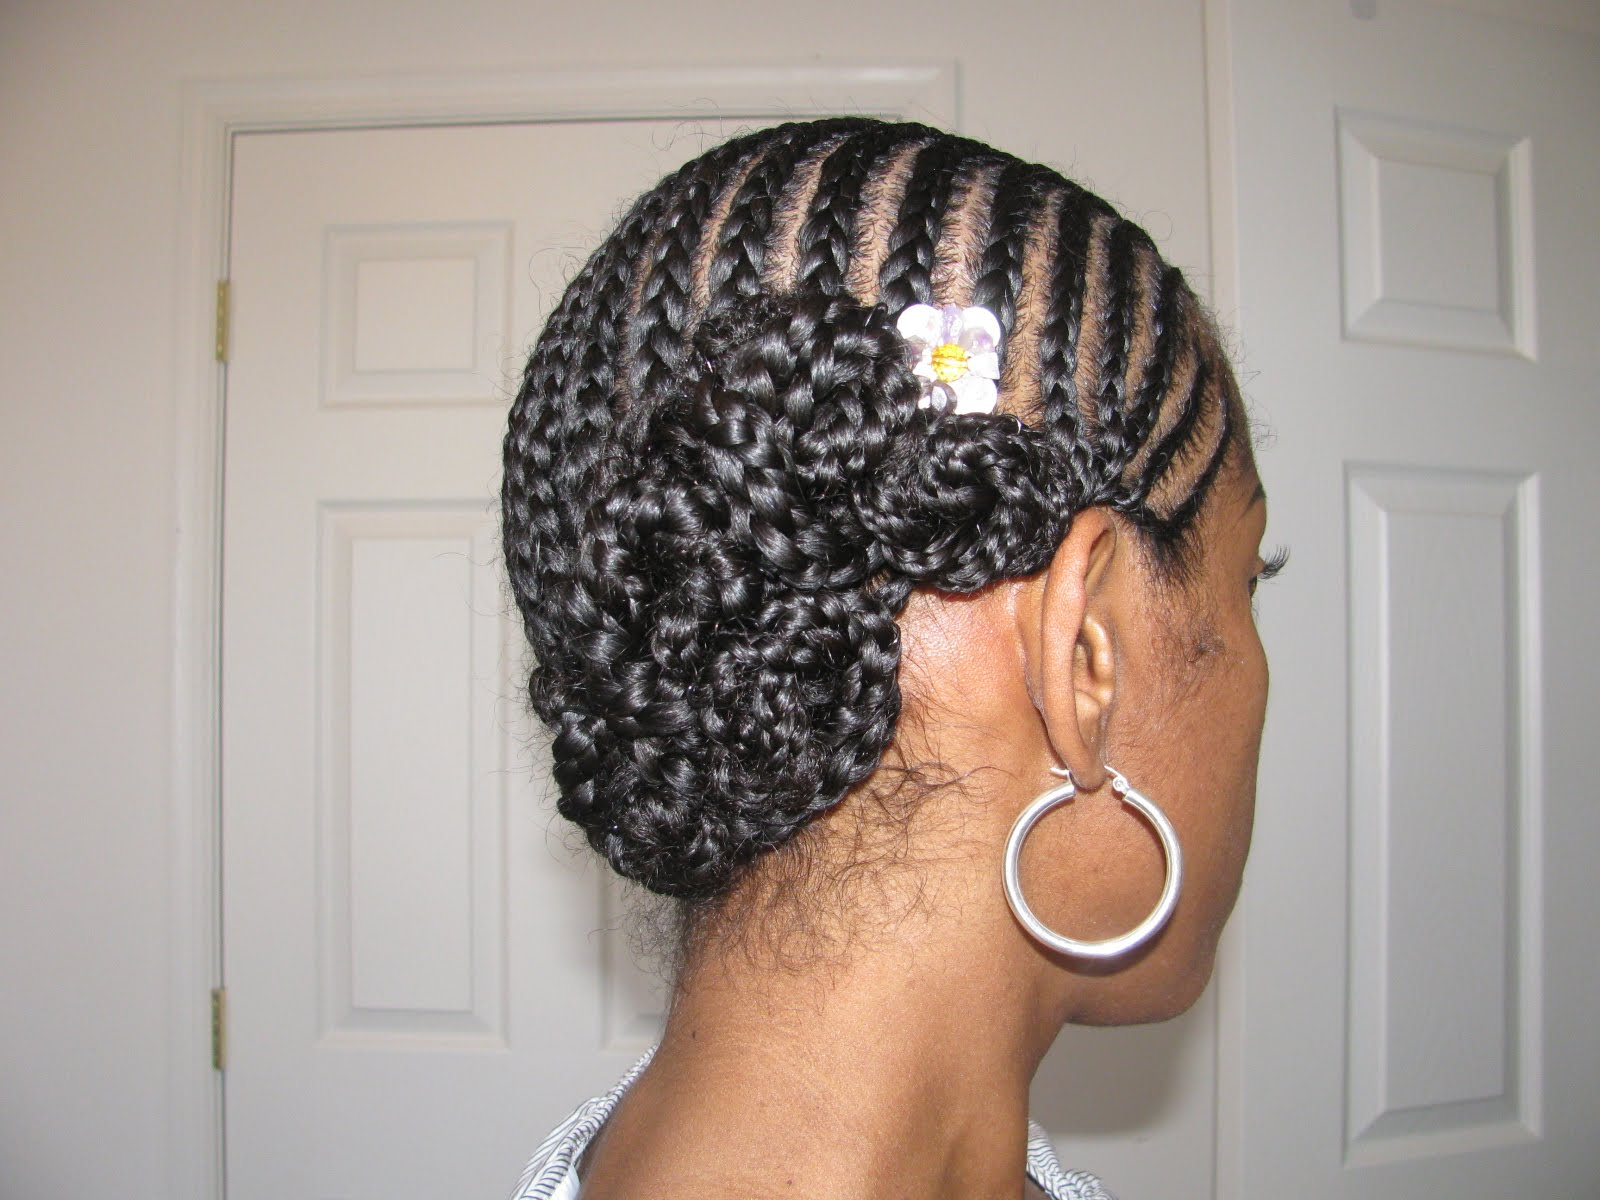 What Are Protective Hair Styles?